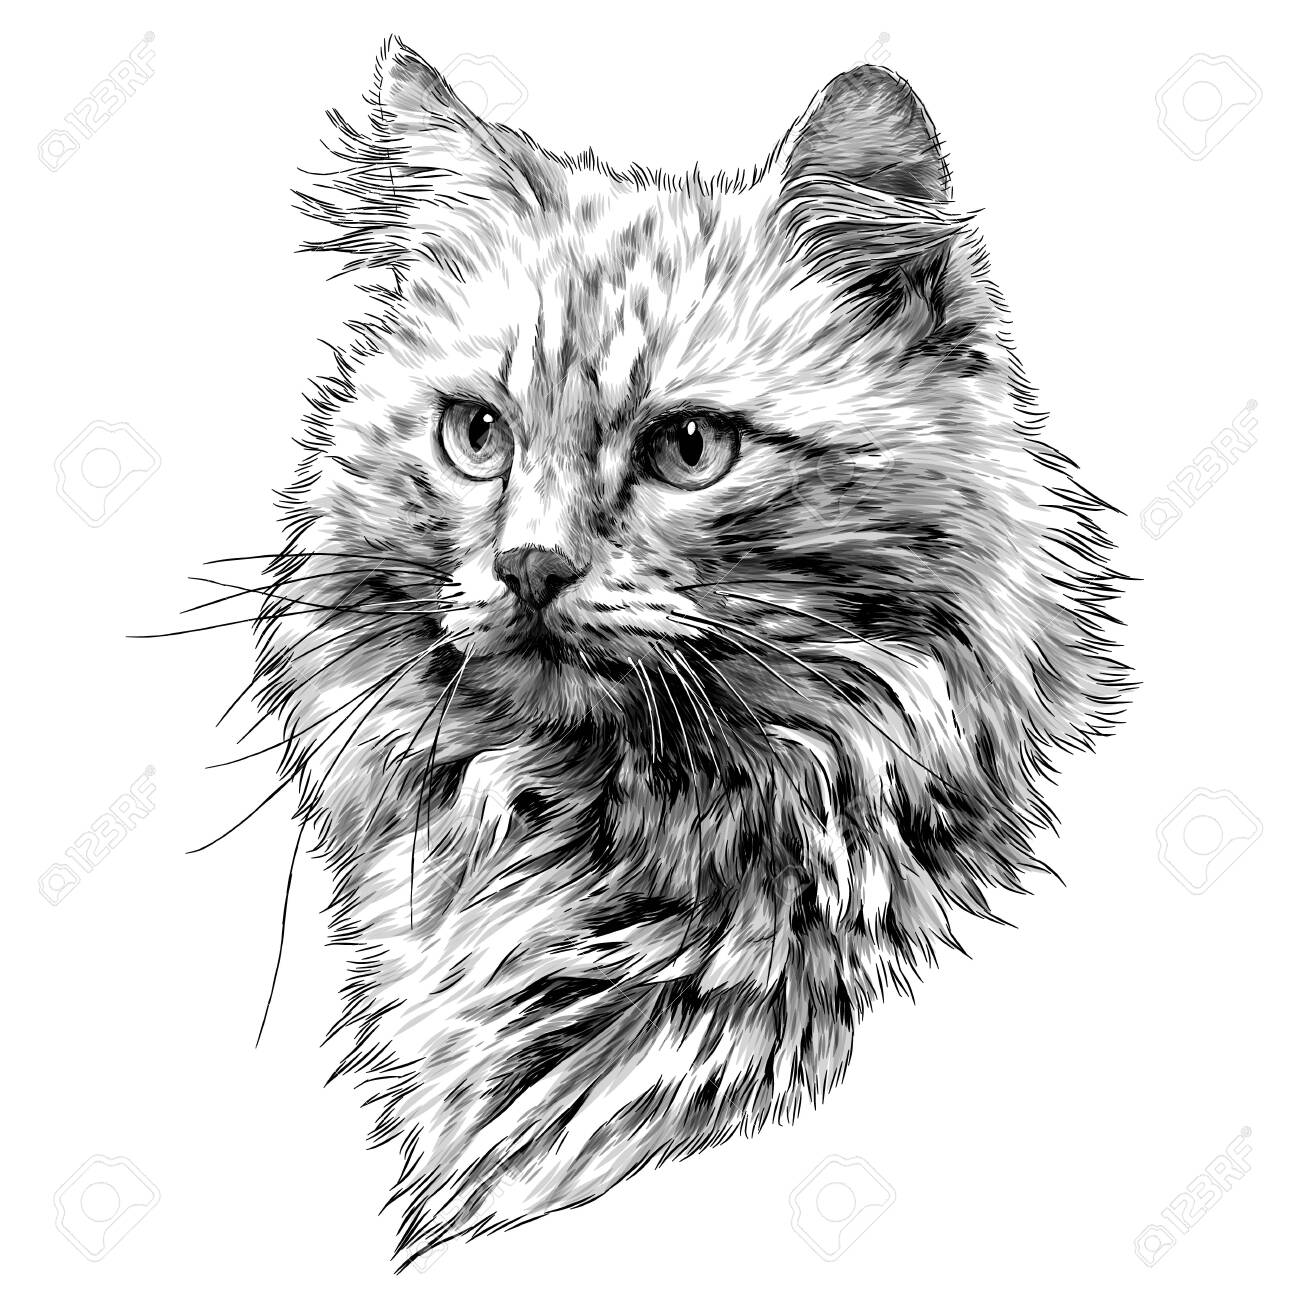 red cat muzzle with thick hair, sketch vector graphics monochrome illustration on a white background - 139493460